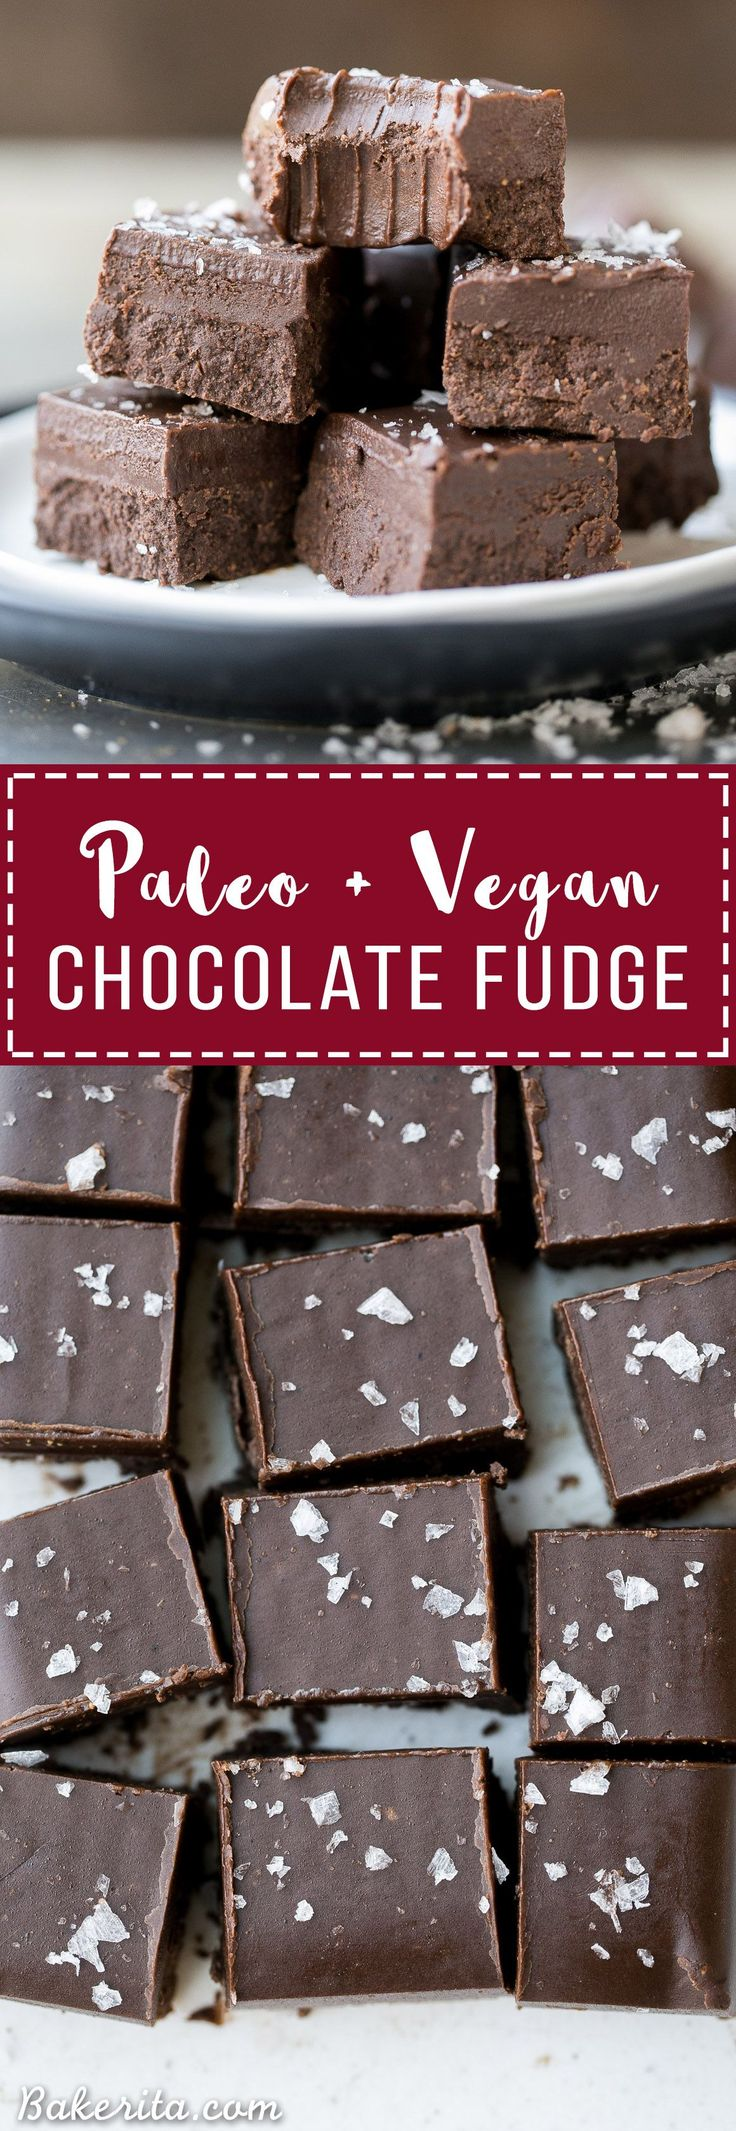 This Chocolate Fudge is incredibly smooth, rich and chocolatey. It's made with only four wholesome ingredients, there's no cooking required, and it's Paleo + vegan! It's the perfect holiday treat.